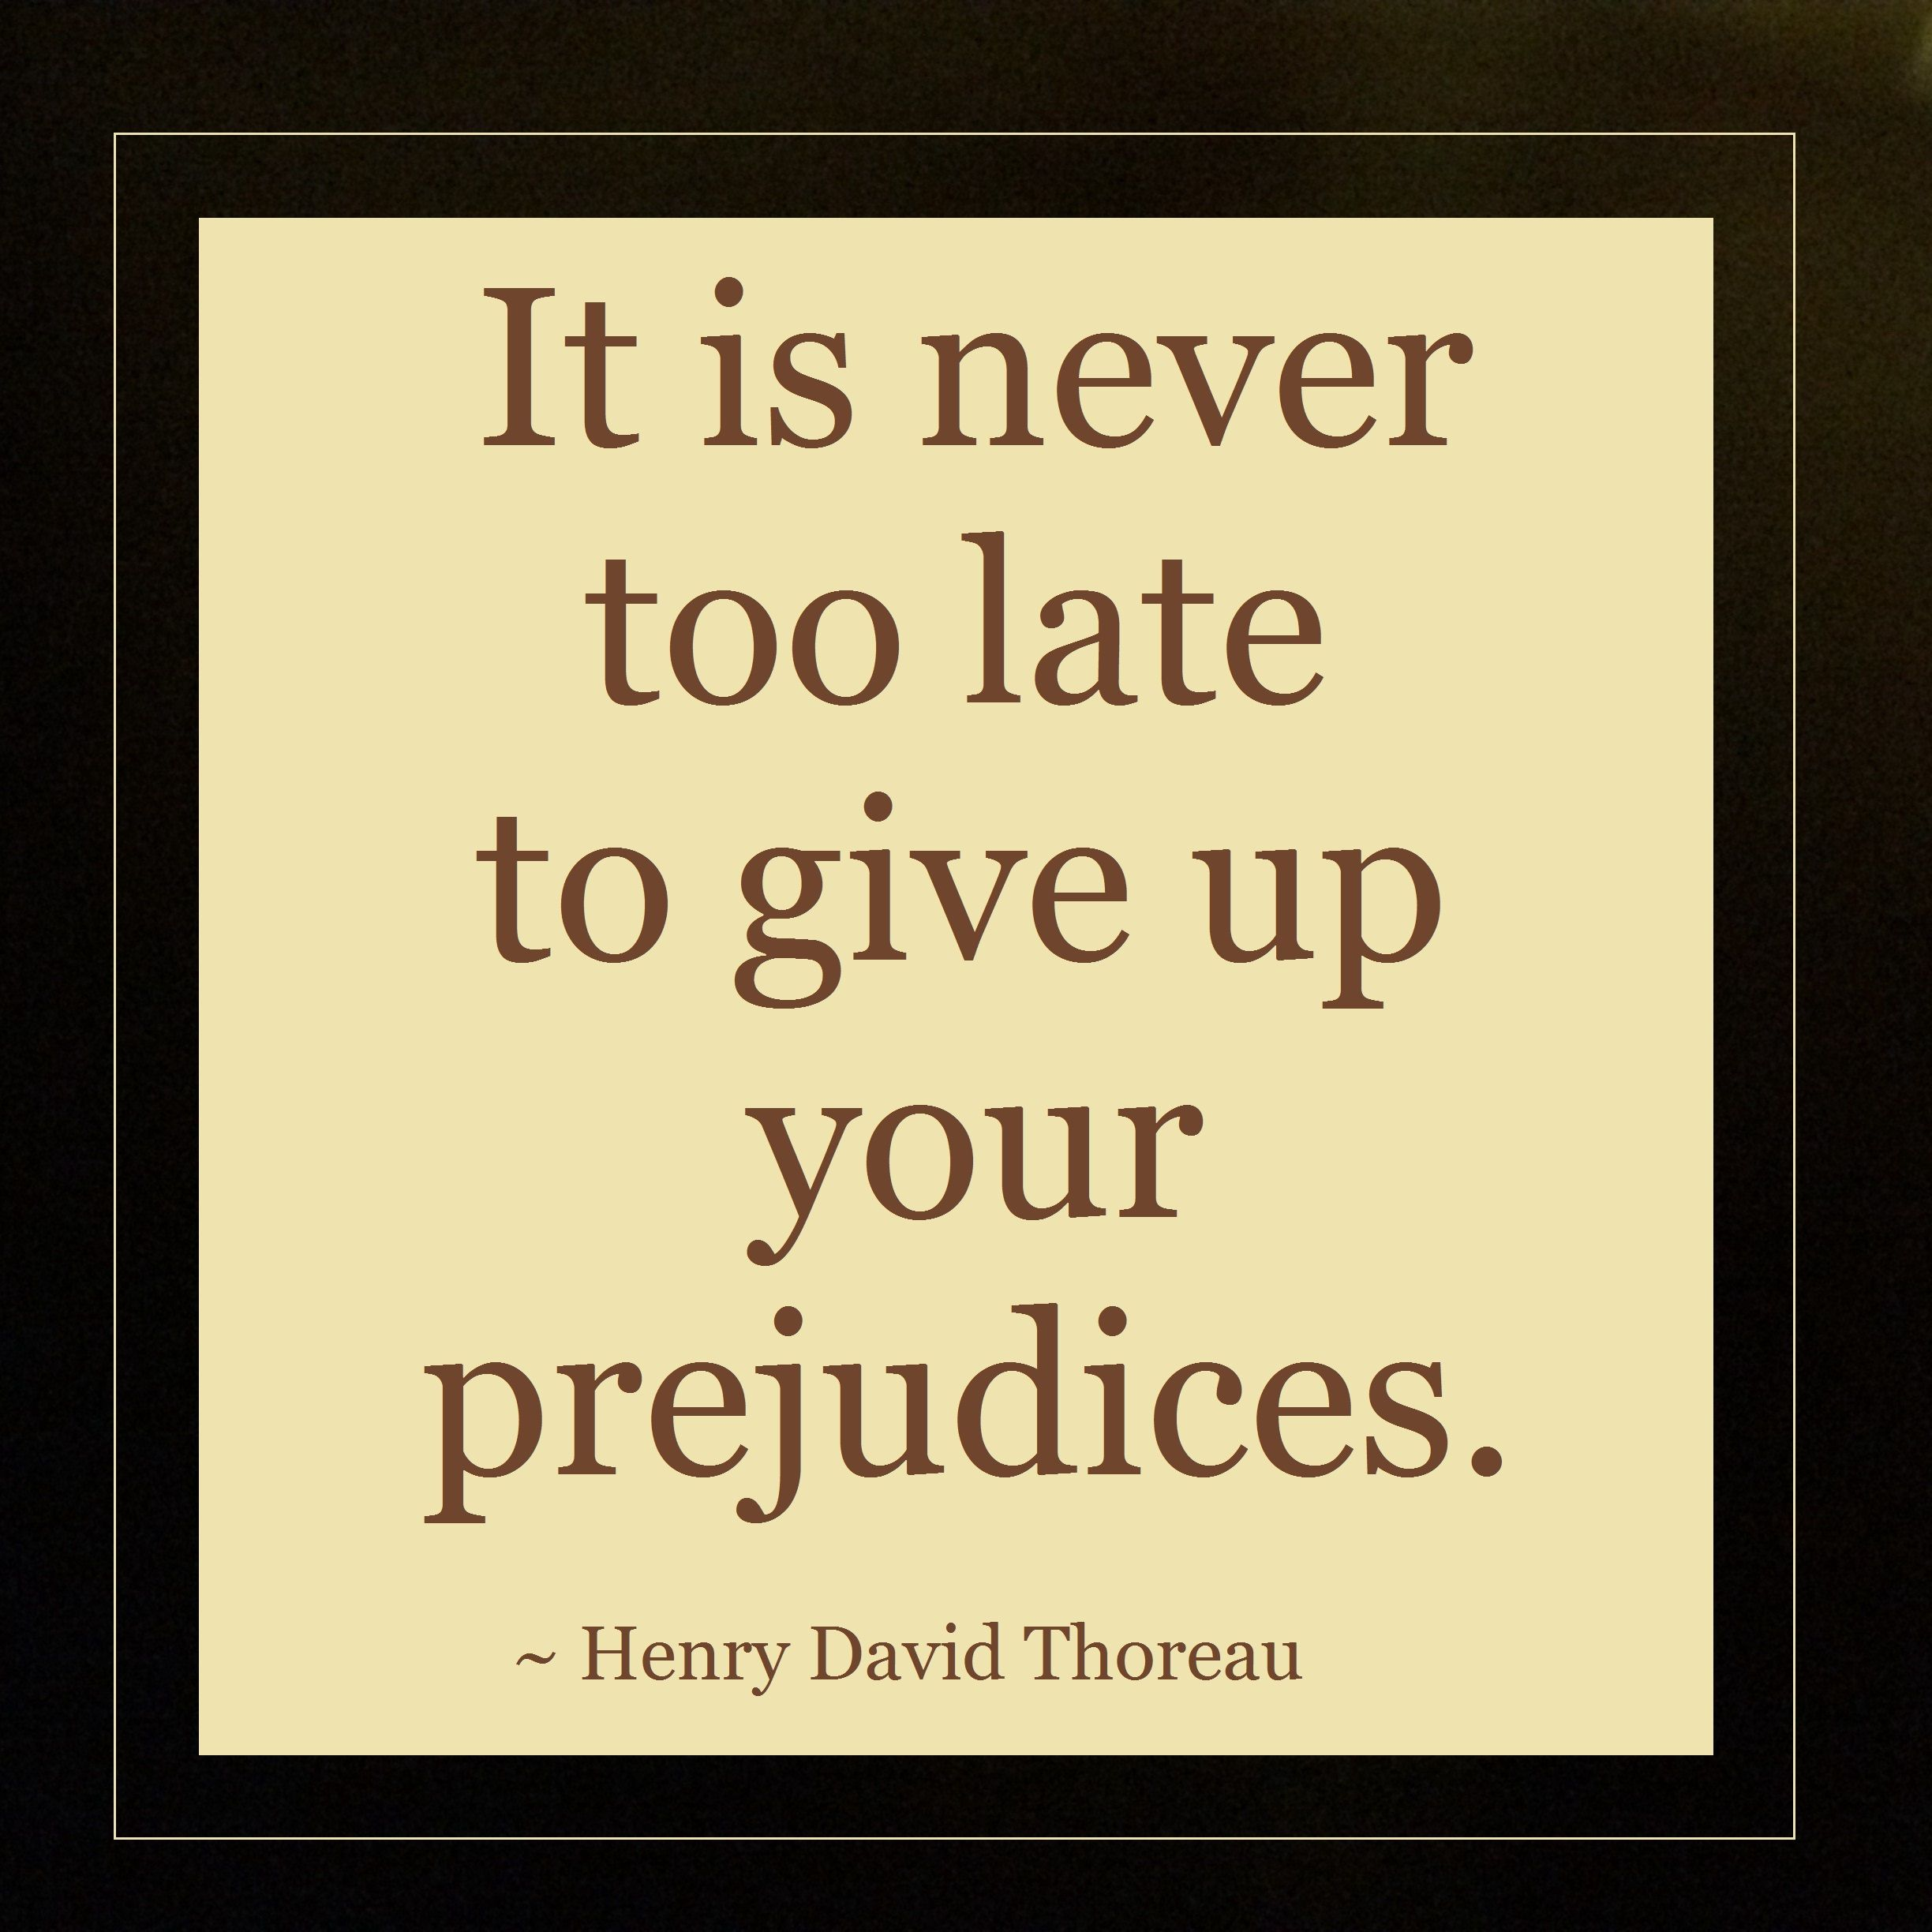 It Is Never Too Late To Give Up Your Prejudices Henry David Thoreau Quote Henry David Thoreau Thoreau Quotations